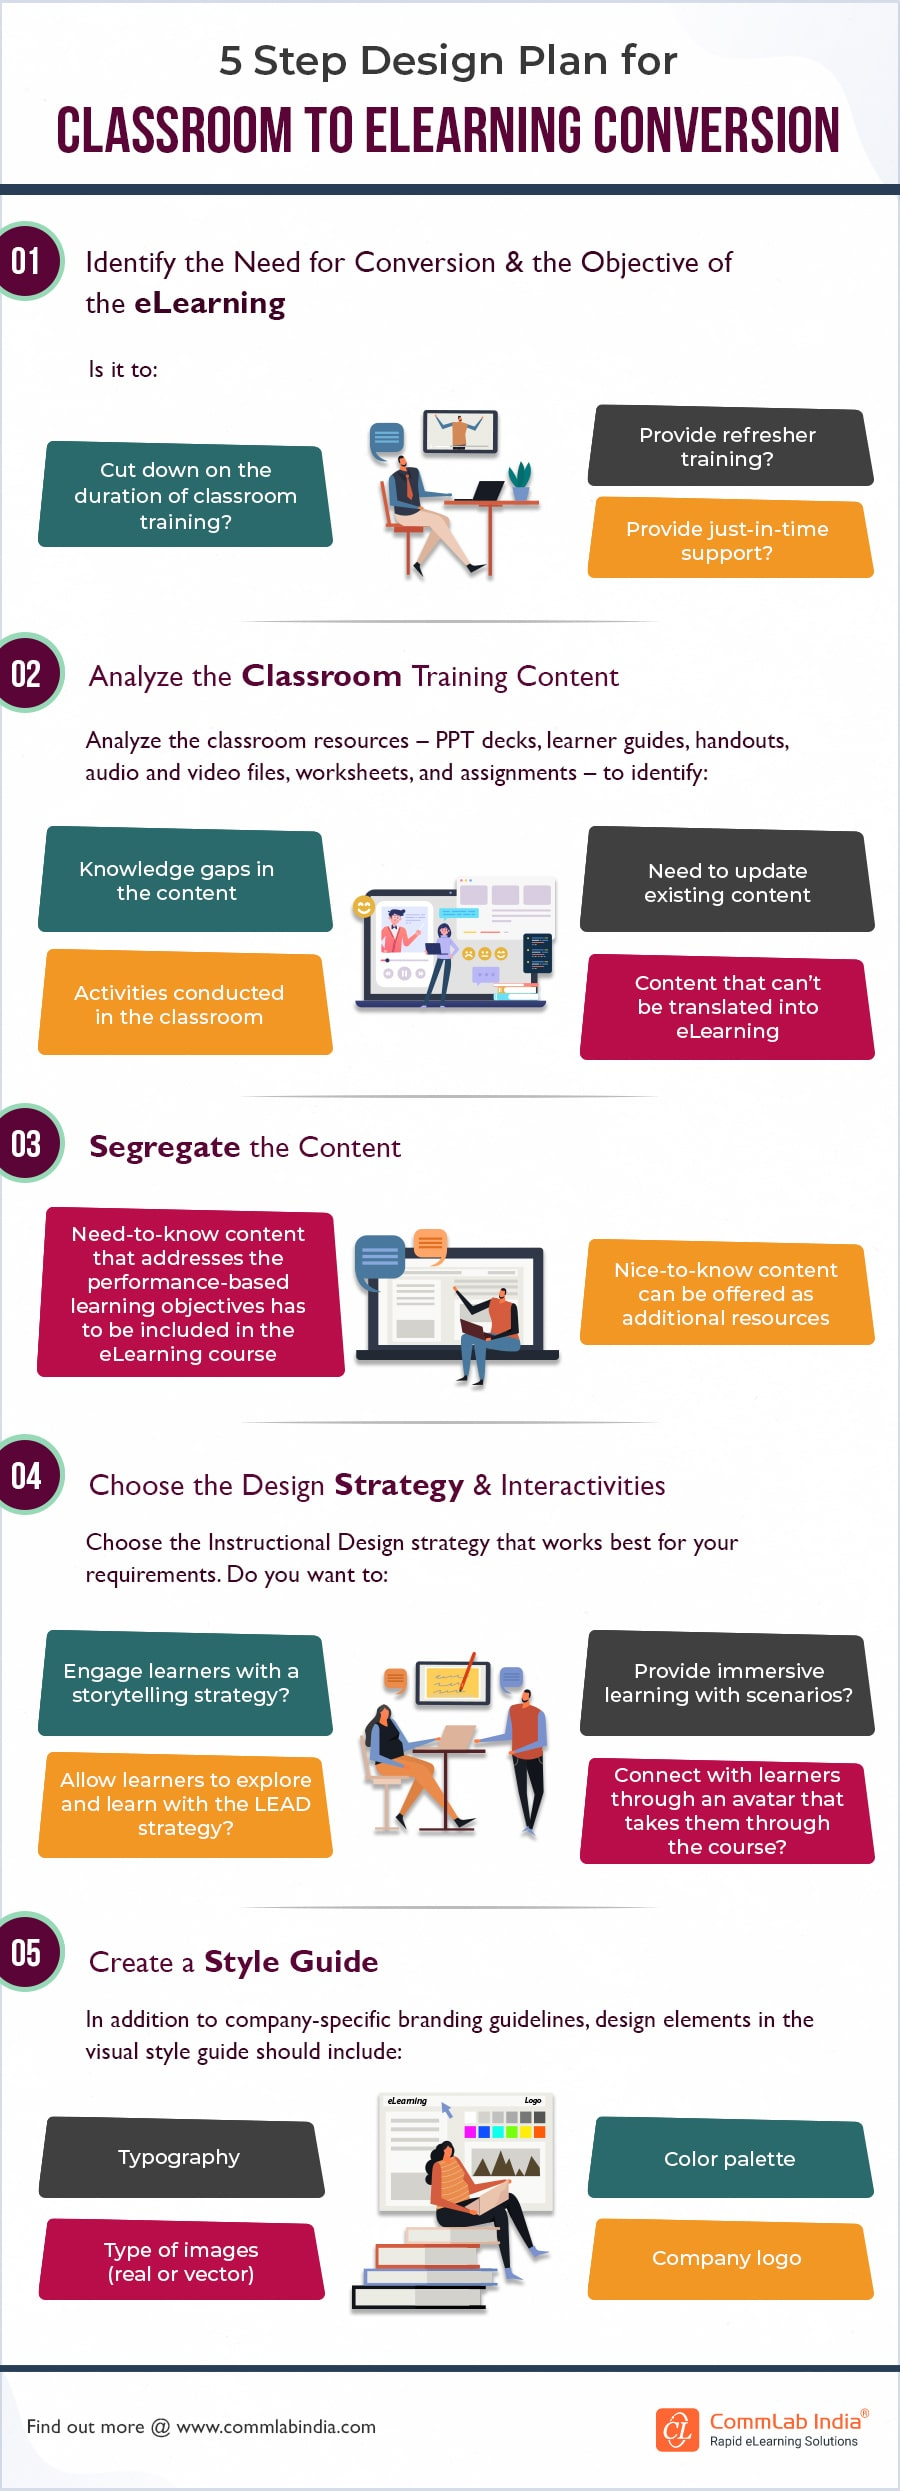 Classroom to eLearning Conversion – A Design Plan for Training Managers